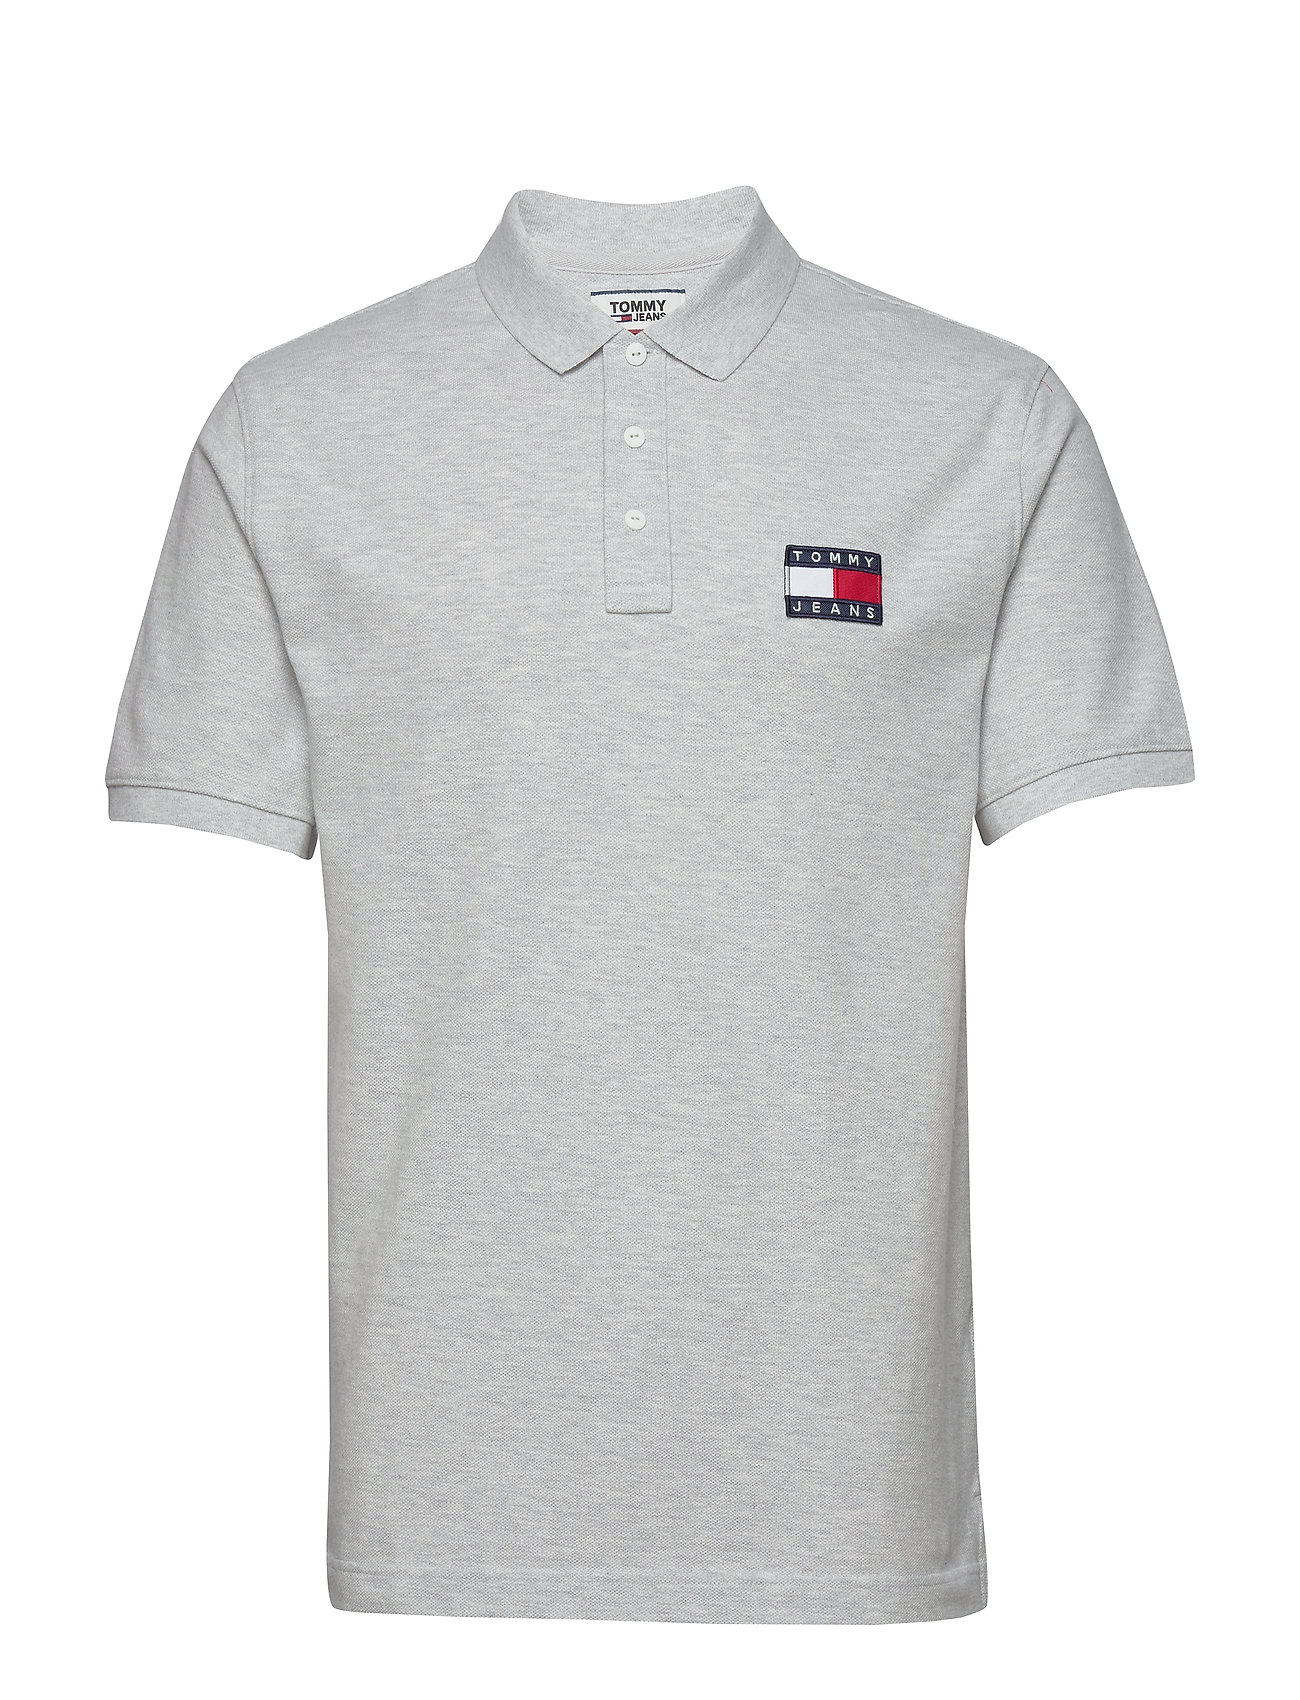 Image of Tjm Tommy Badge Polo Polos Short-sleeved Grå Tommy Jeans (3453292811)